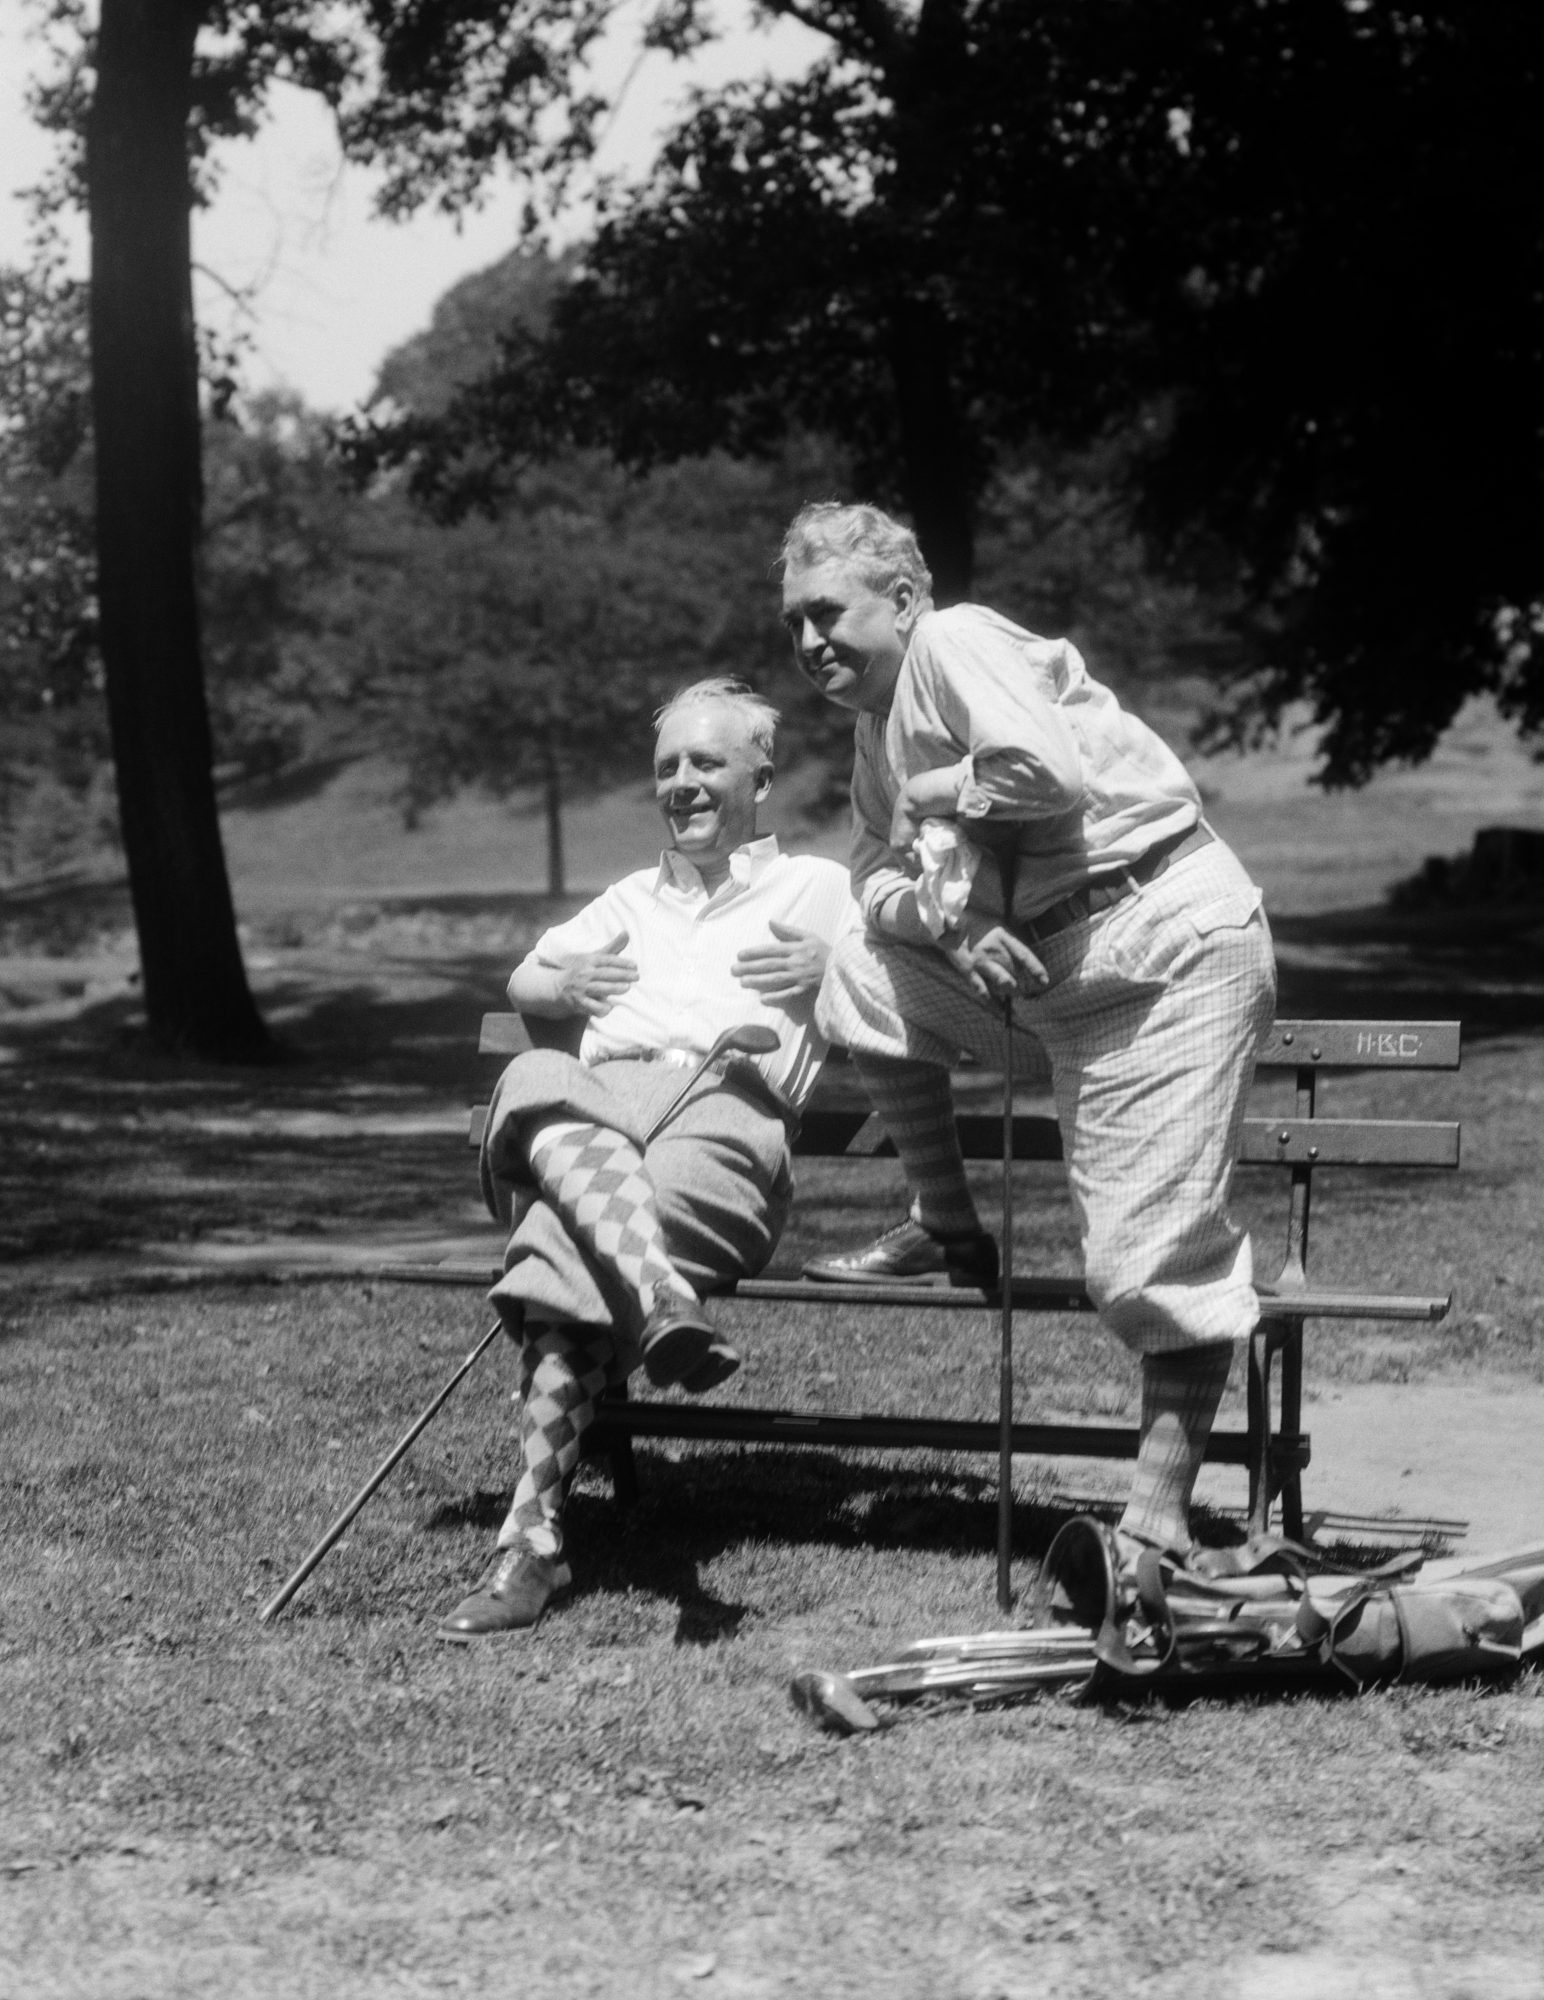 Old Men Smiling While Golfing